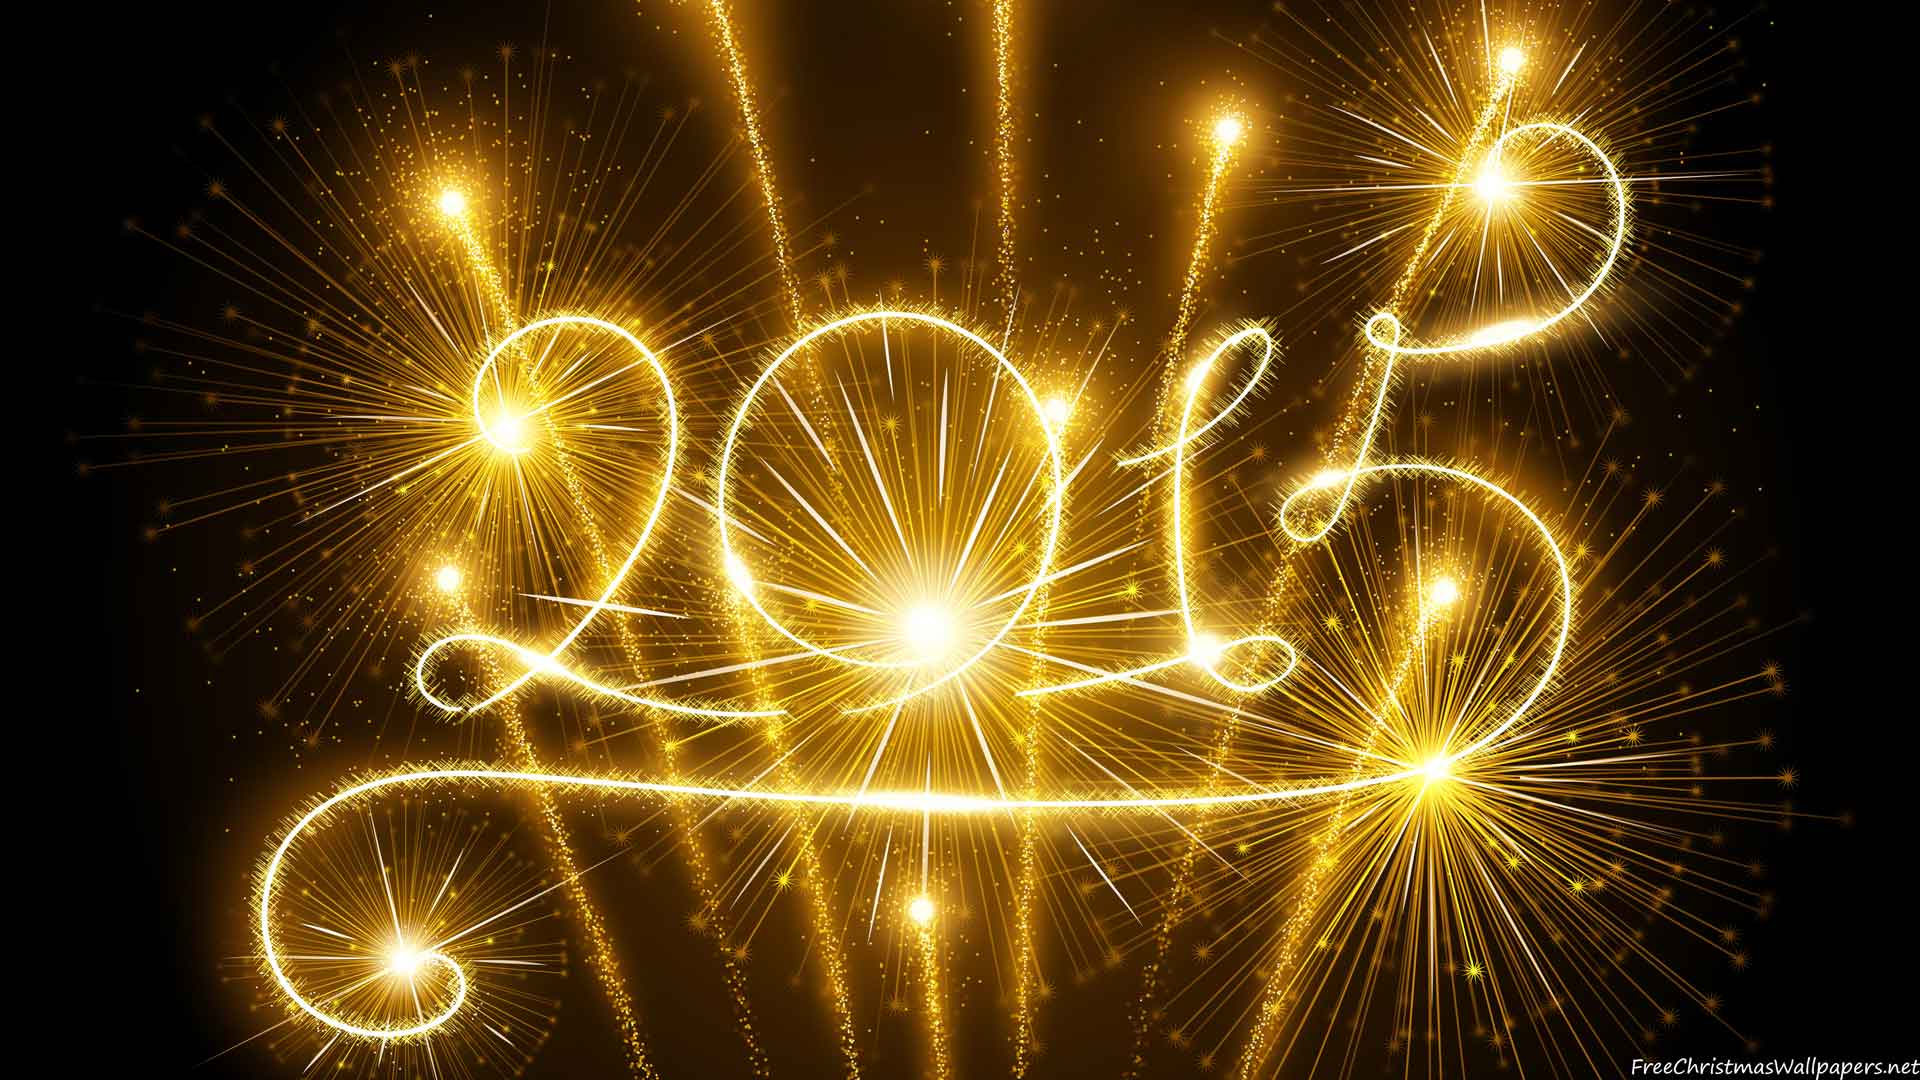 happy-new-year-2015-1920-1080-3088.jpeg